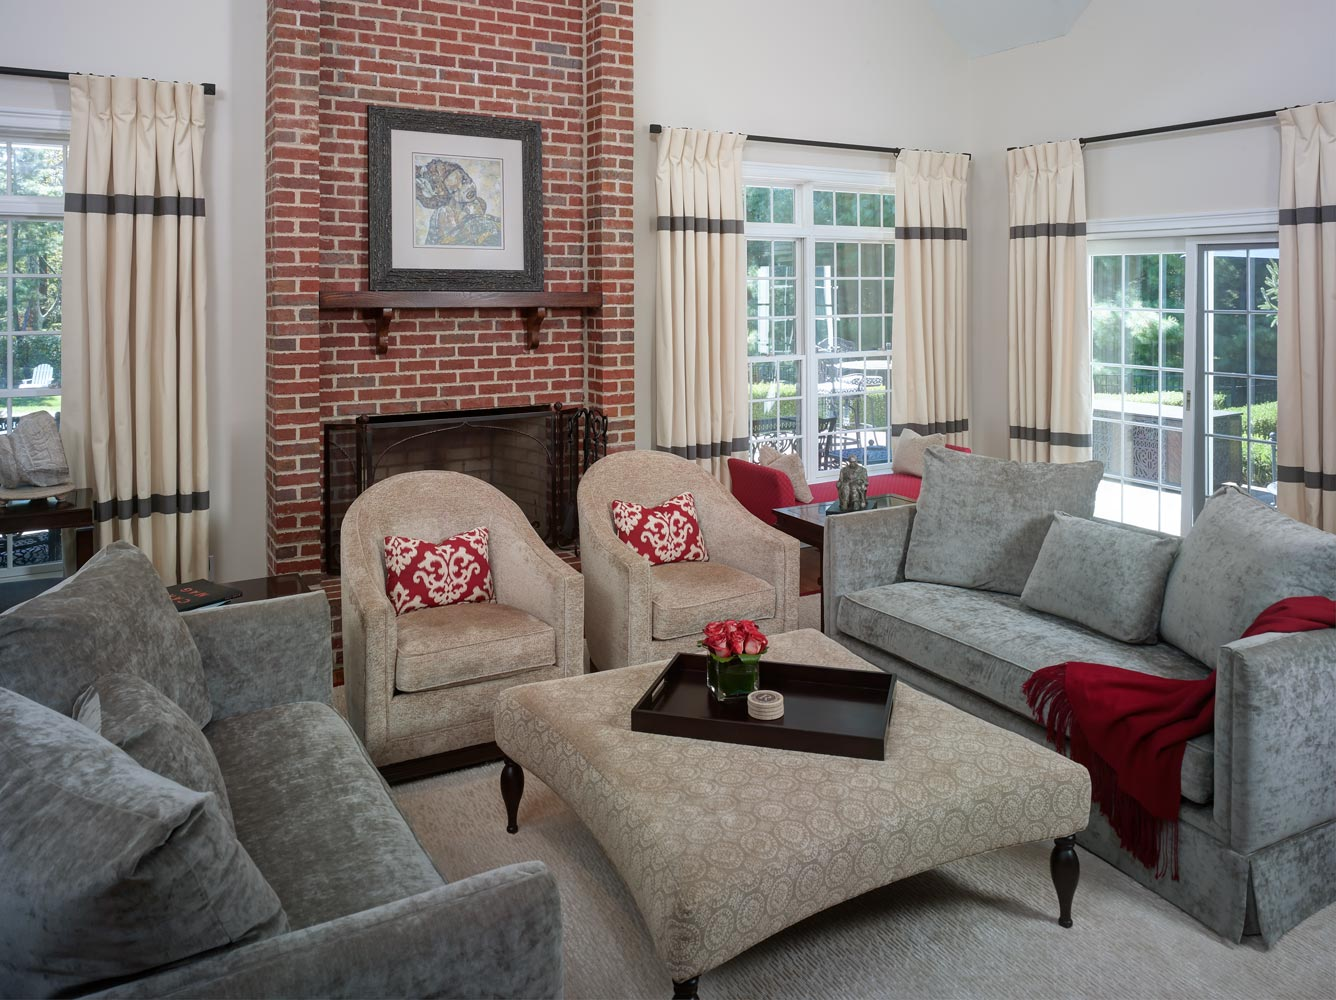 Cozy, Chic Family Room